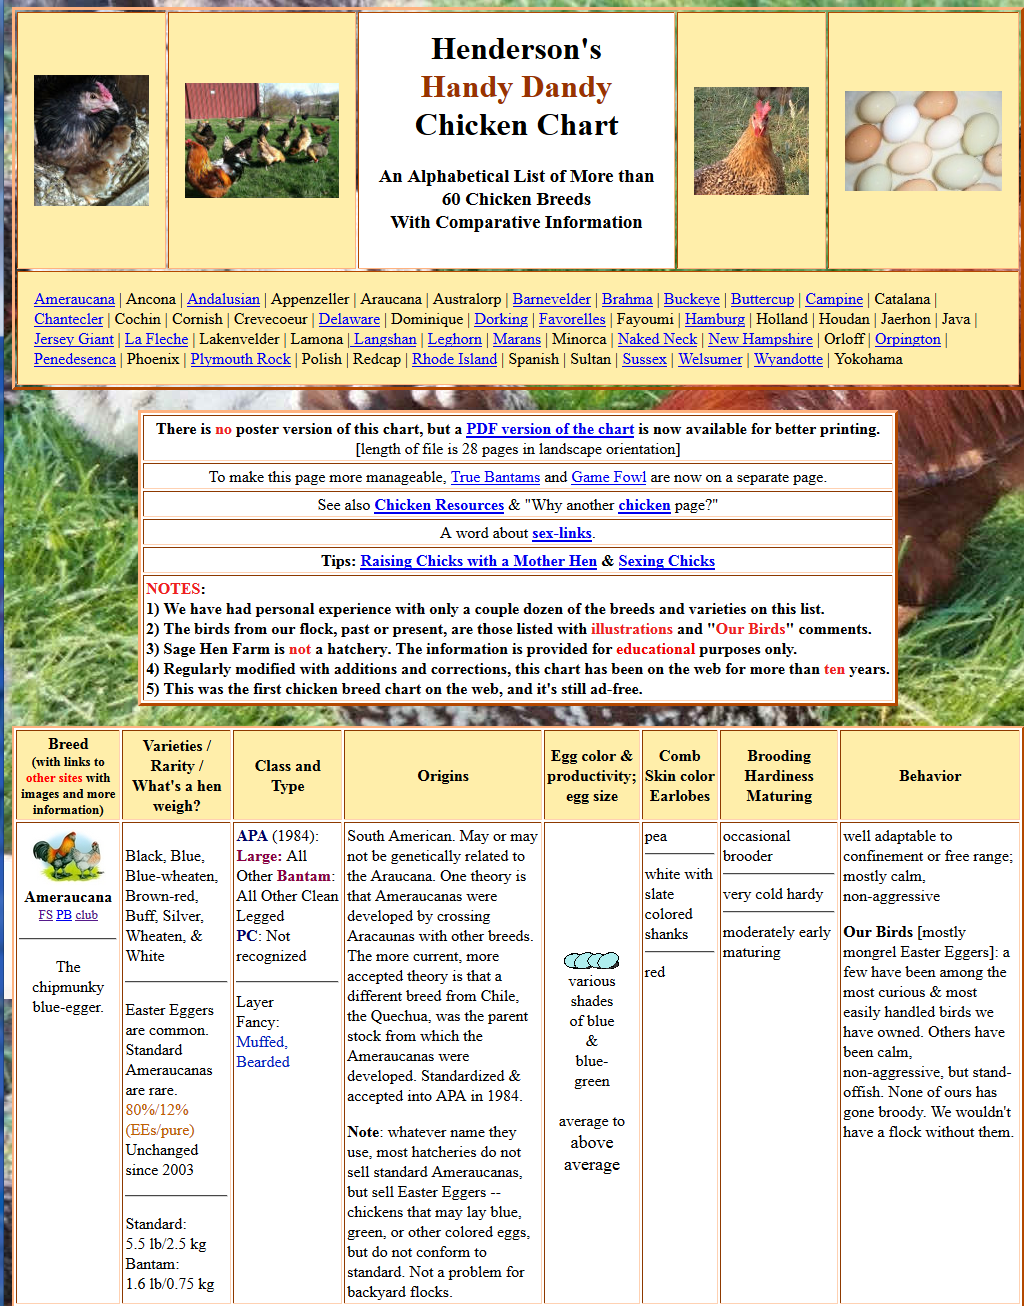 Open inventions hendersons icyousee handy dandy chicken chart here is a screen shot so get on over there and pick out your next chicken breed nvjuhfo Gallery